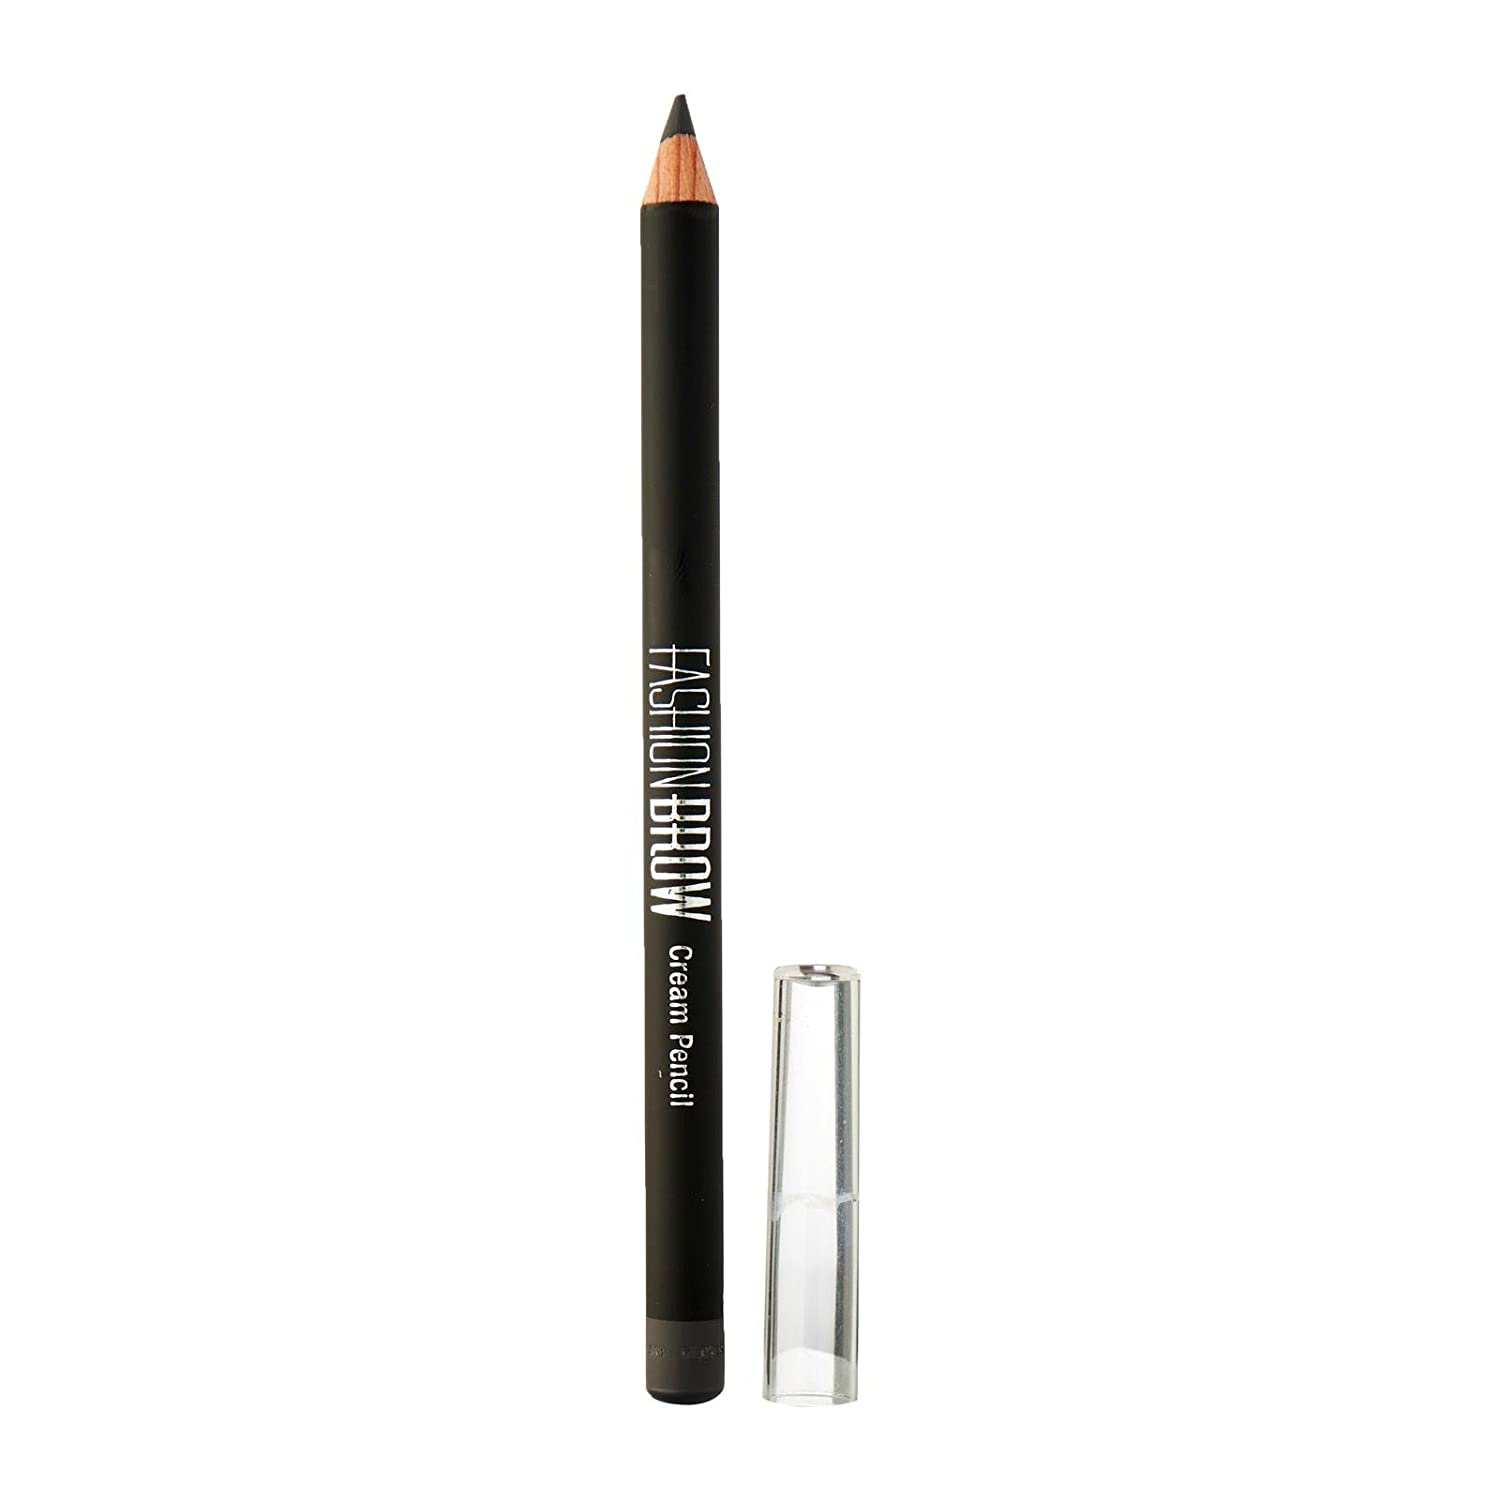 Maybelline New York Fashion Brow Cream Pencil, Gray, 0.78g